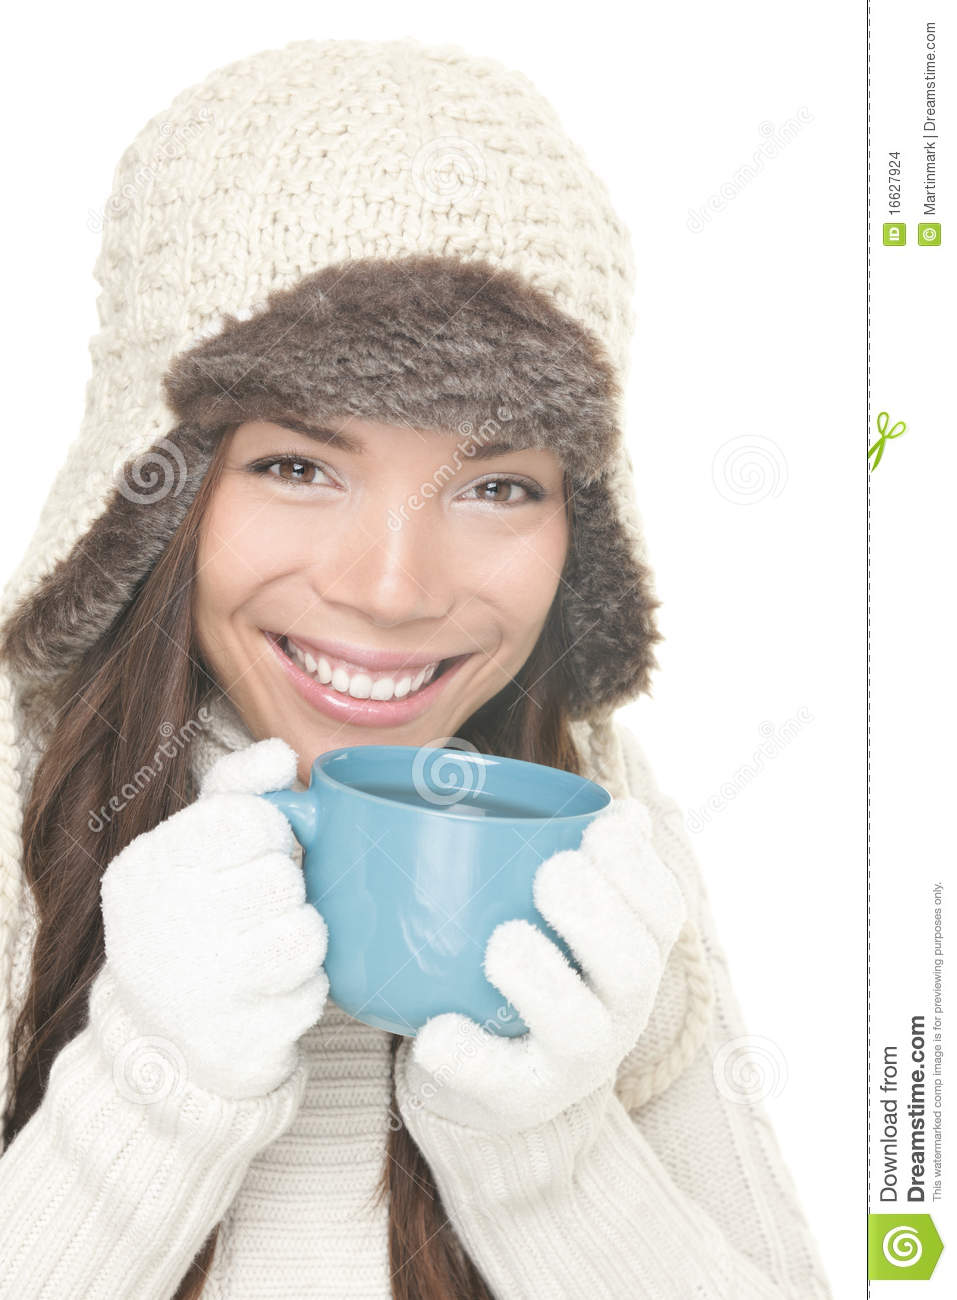 410c0b307311 Winter Tea   Coffee Drink Drinking Girl Stock Photo - Image of drink ...